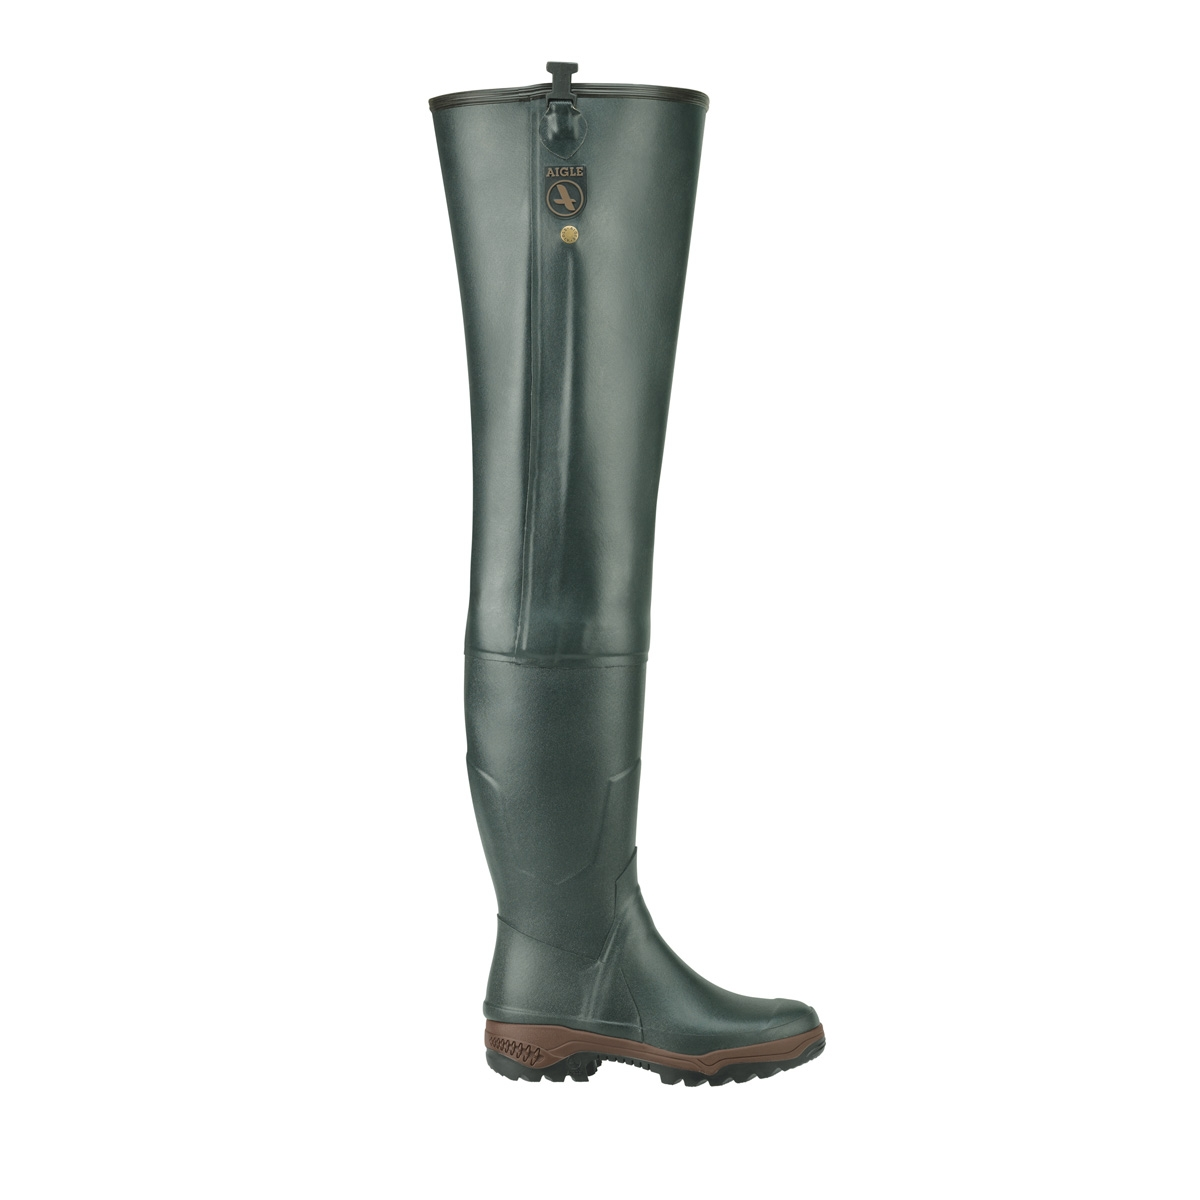 nouvelle collection ec6a4 a64d0 Aigle Parcours 2 Stream Waders - Bronze (Dark Green)